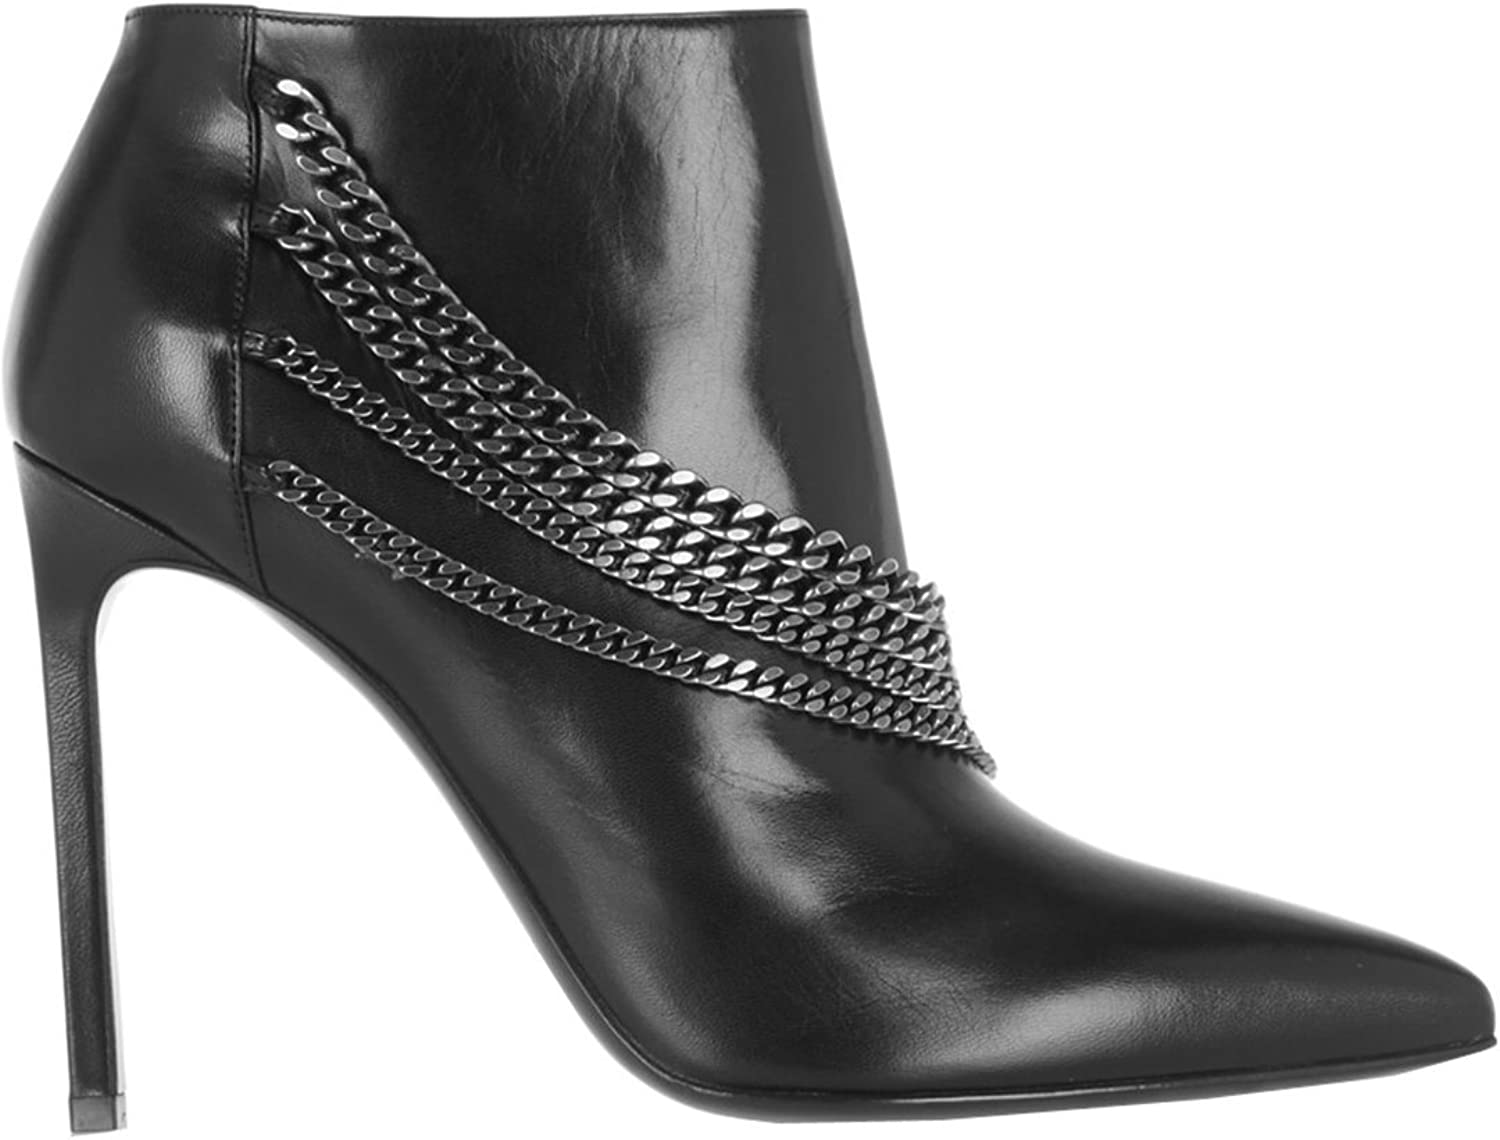 TDA Women's Pointed Toe Zipper Chains Calfskin Evening Party Dress Sexy Stiletto Ankle Boots